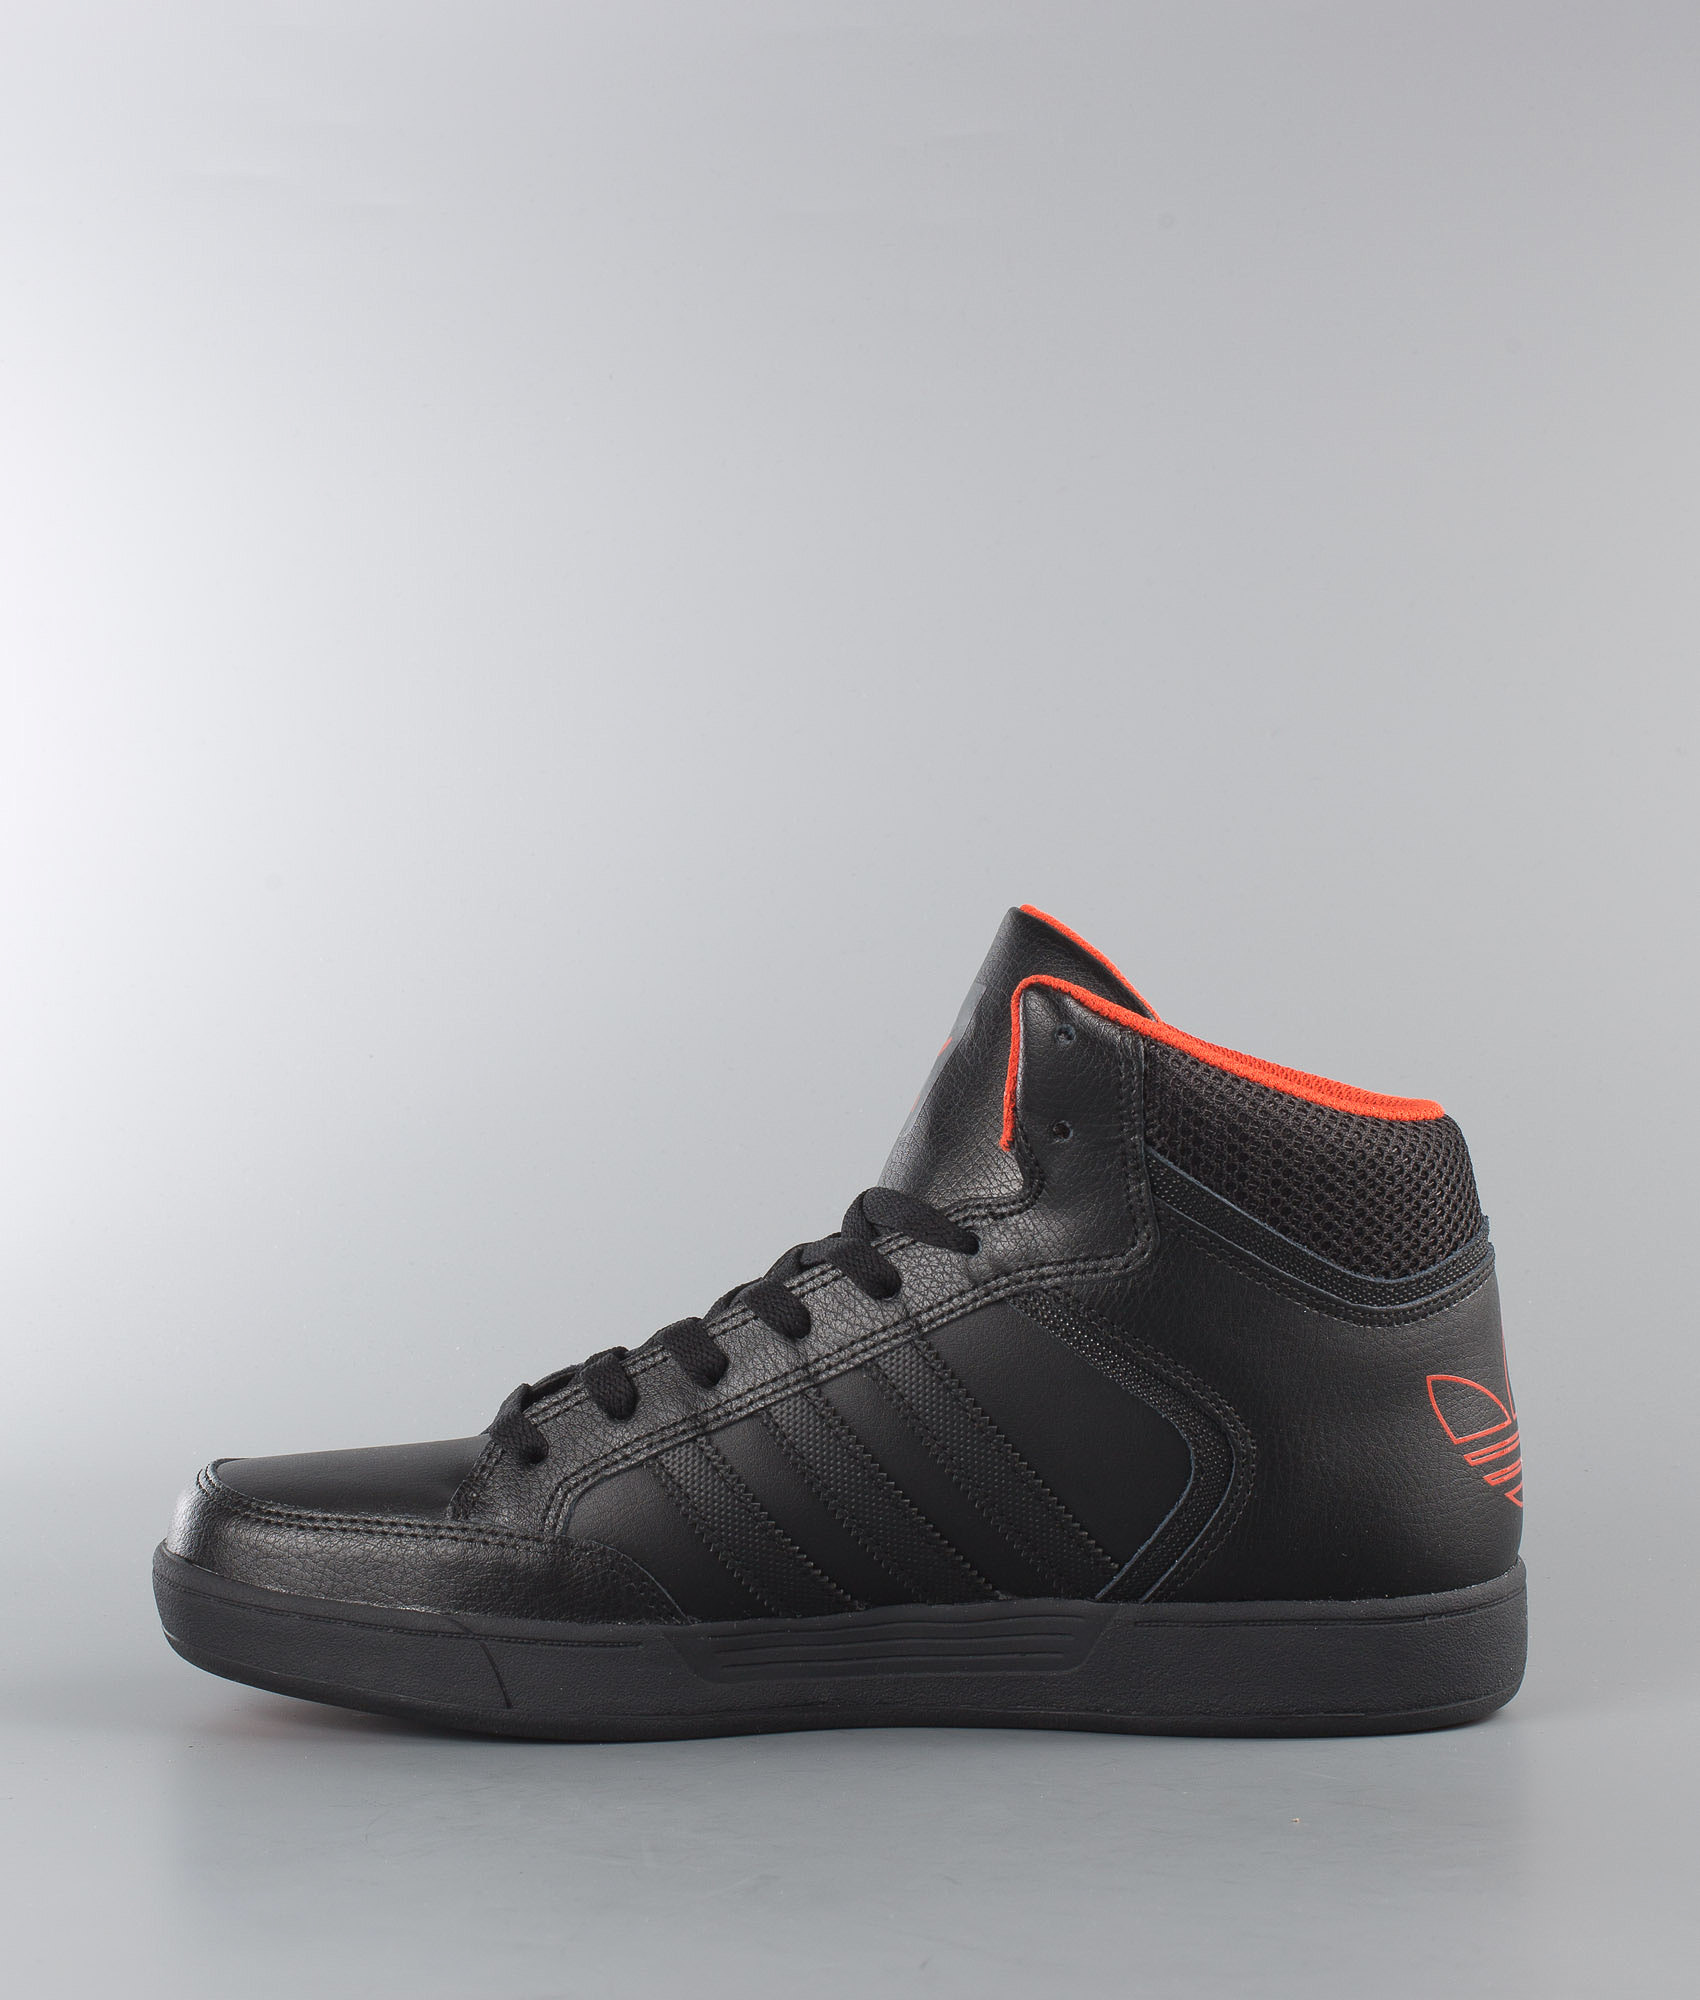 reputable site 9123f 0a810 Adidas Skateboarding Varial Mid Shoes